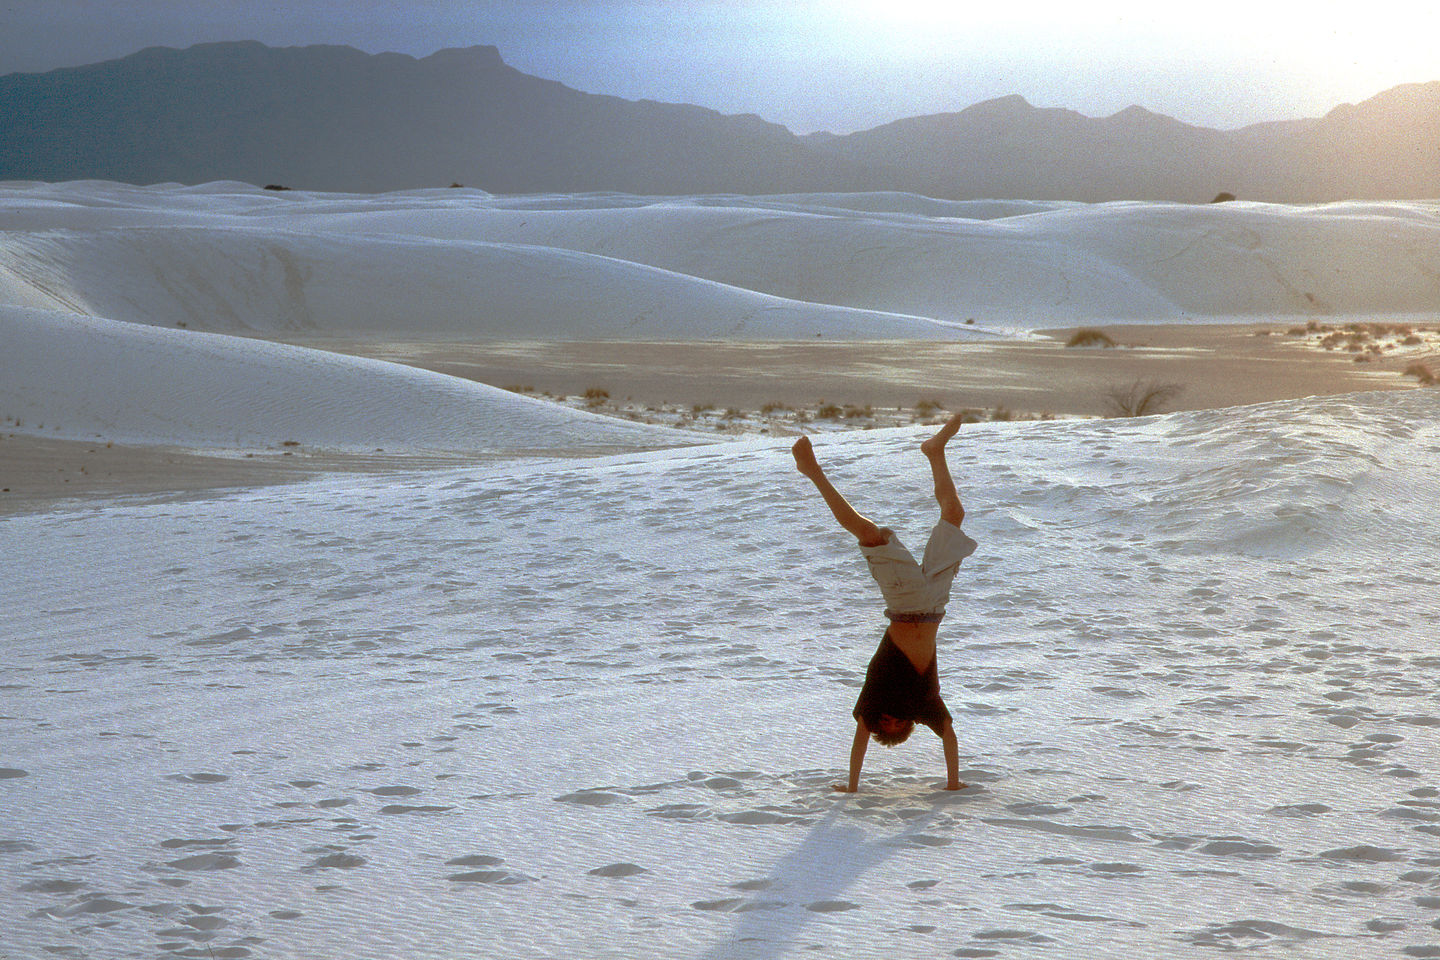 Andrew doing handstand on dunes